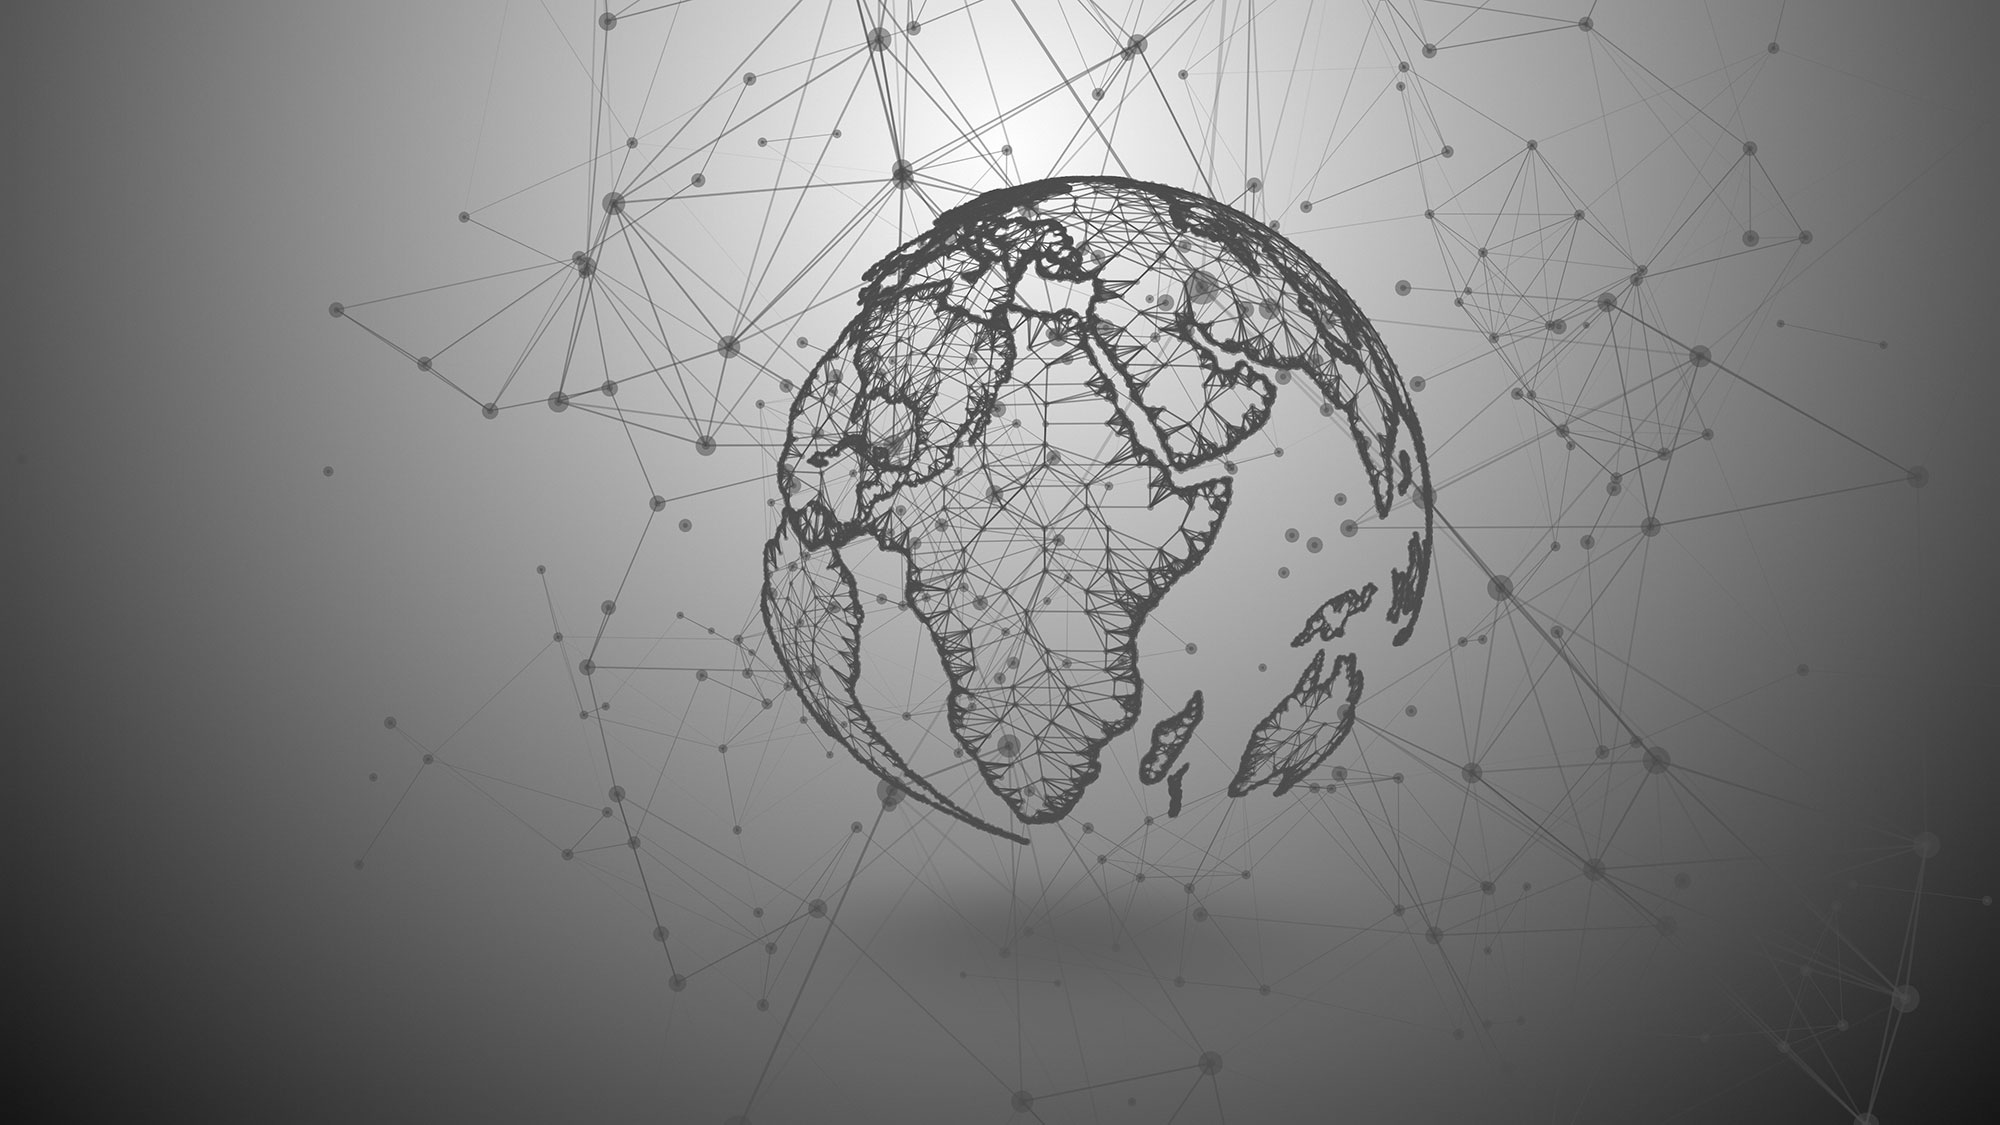 globe-earth-network-connections-abstract